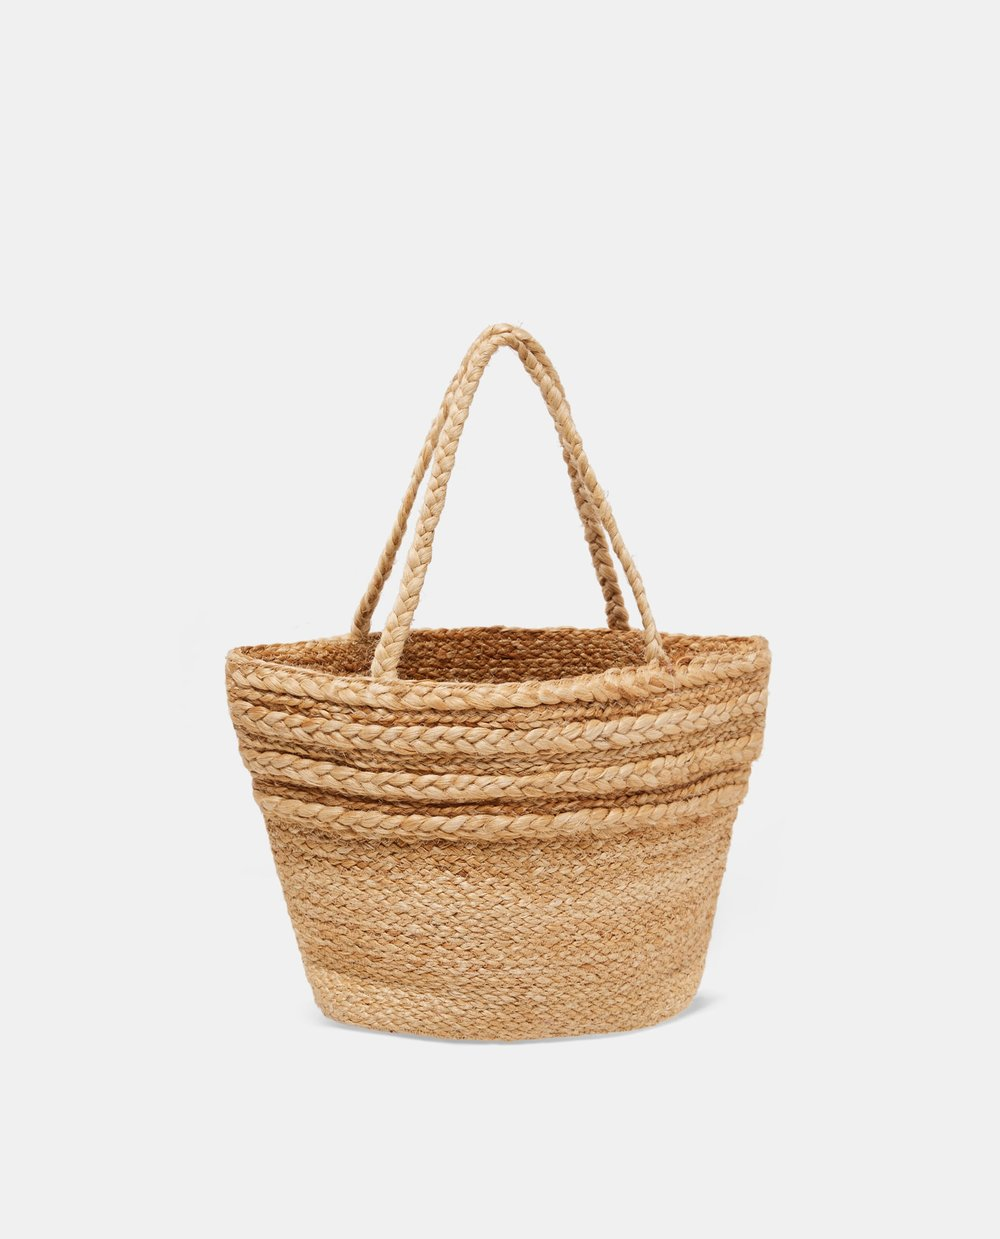 Zara-limited-edition-natural-jute-bag.jpg